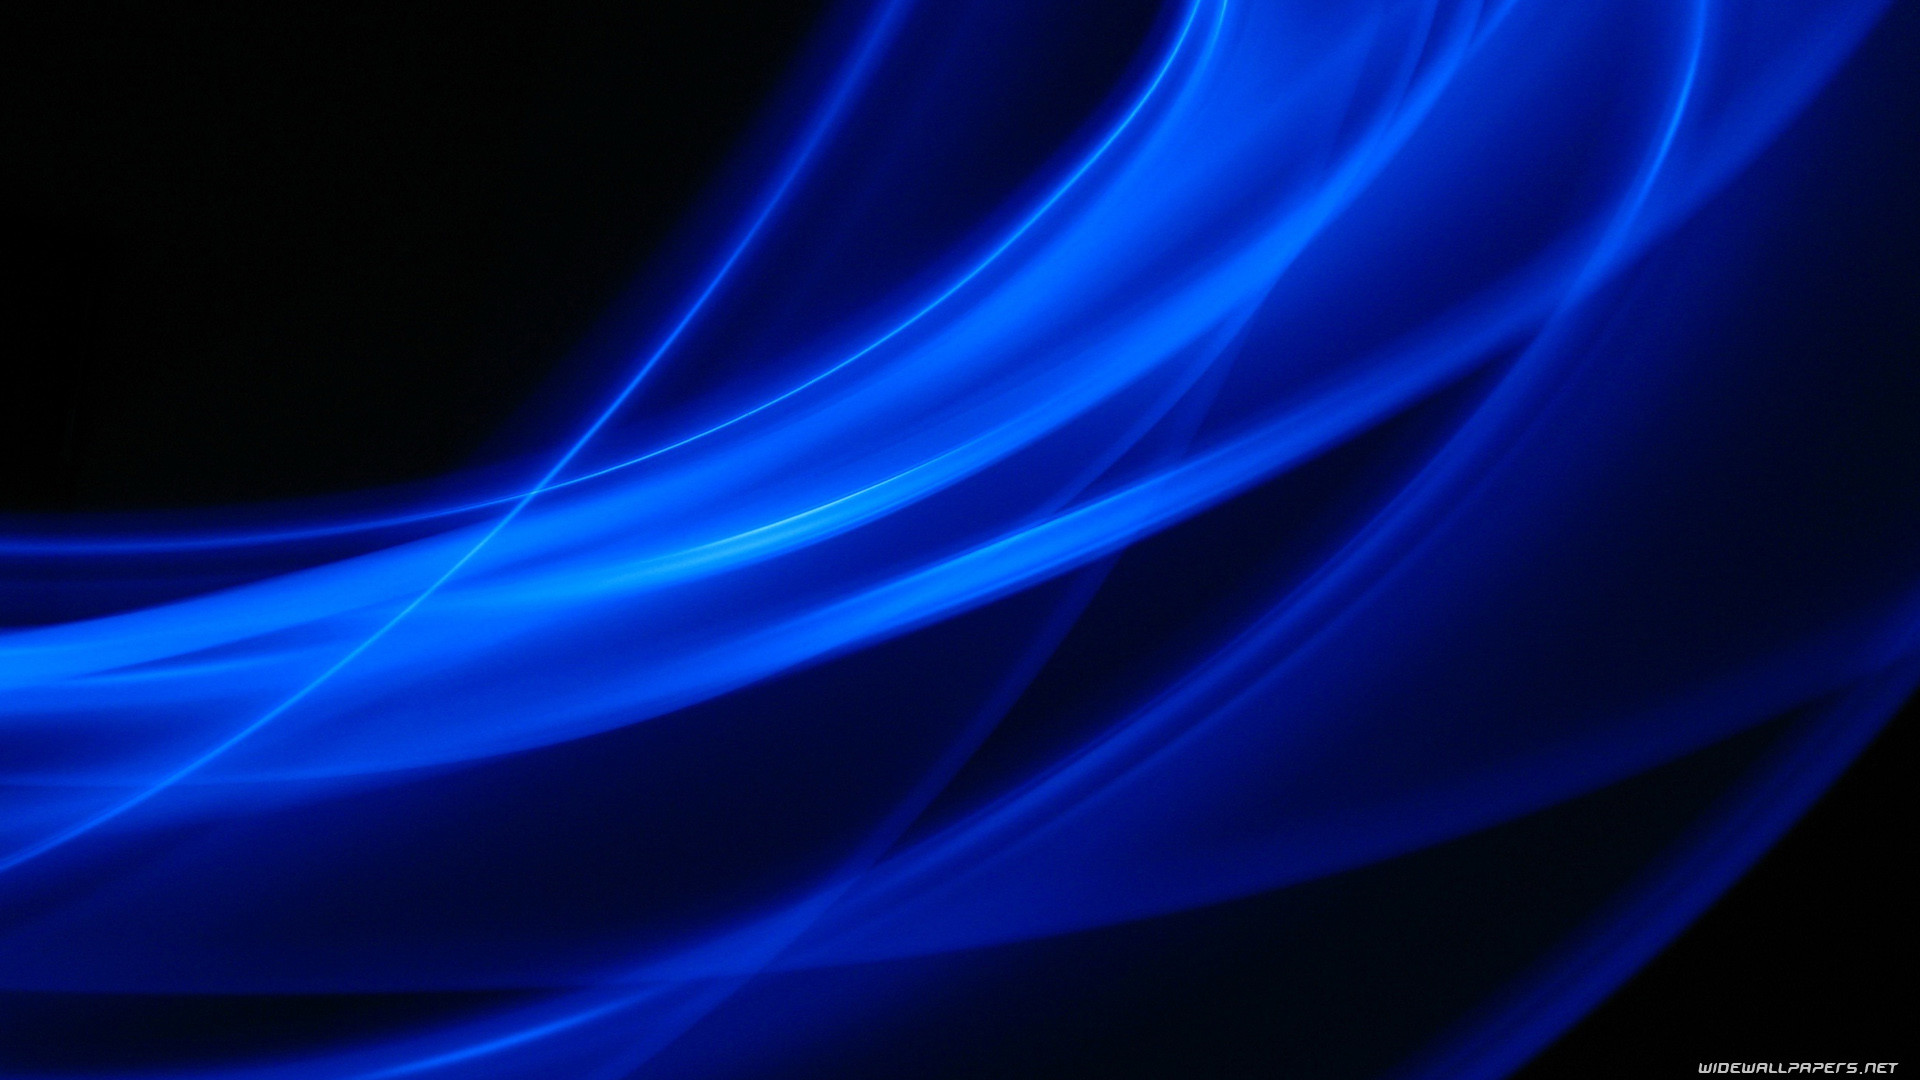 Blue Abstract Wallpapers Widescreen for Desktop Background Hd ..